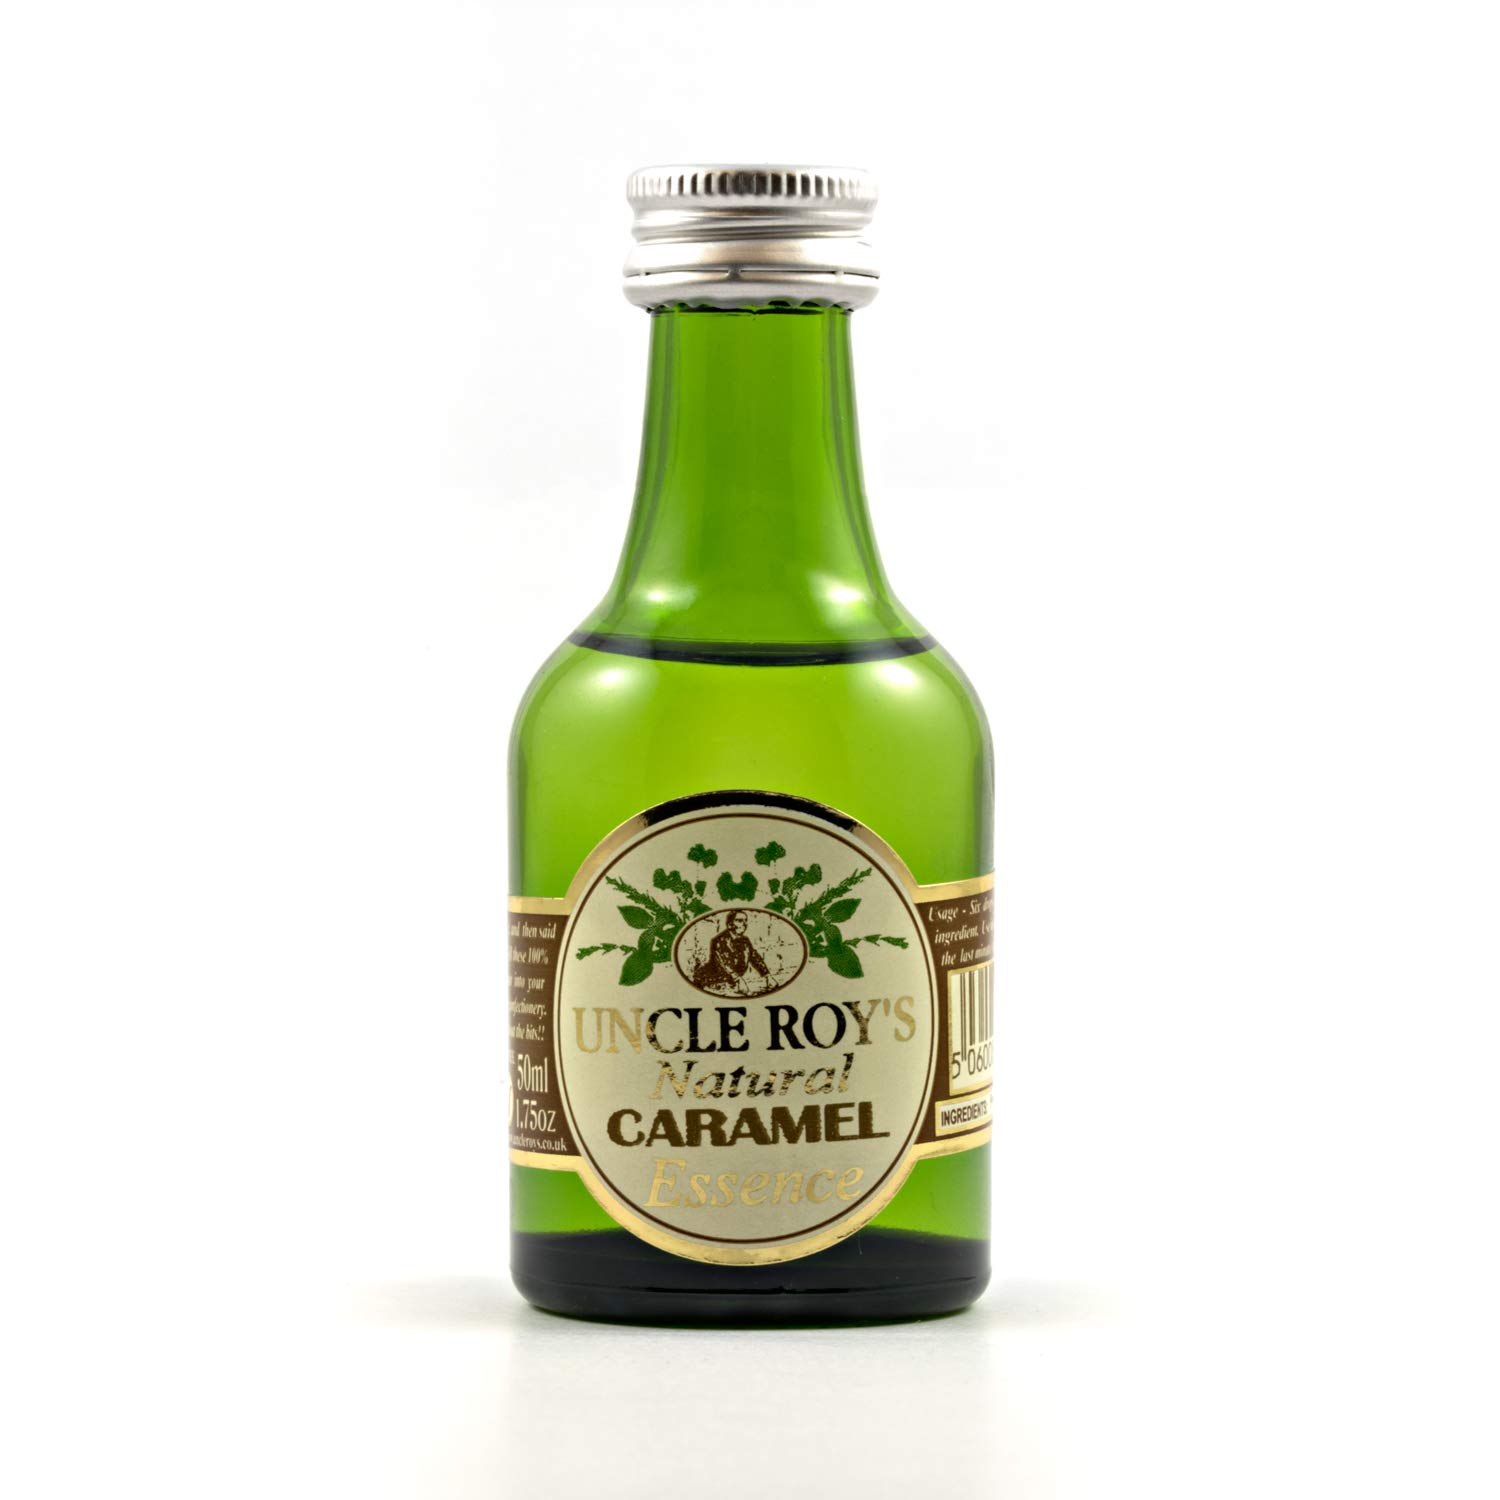 uncle roy Caramel Concentrated Food Essence Catering Size - 2.5litre/90fl.oz